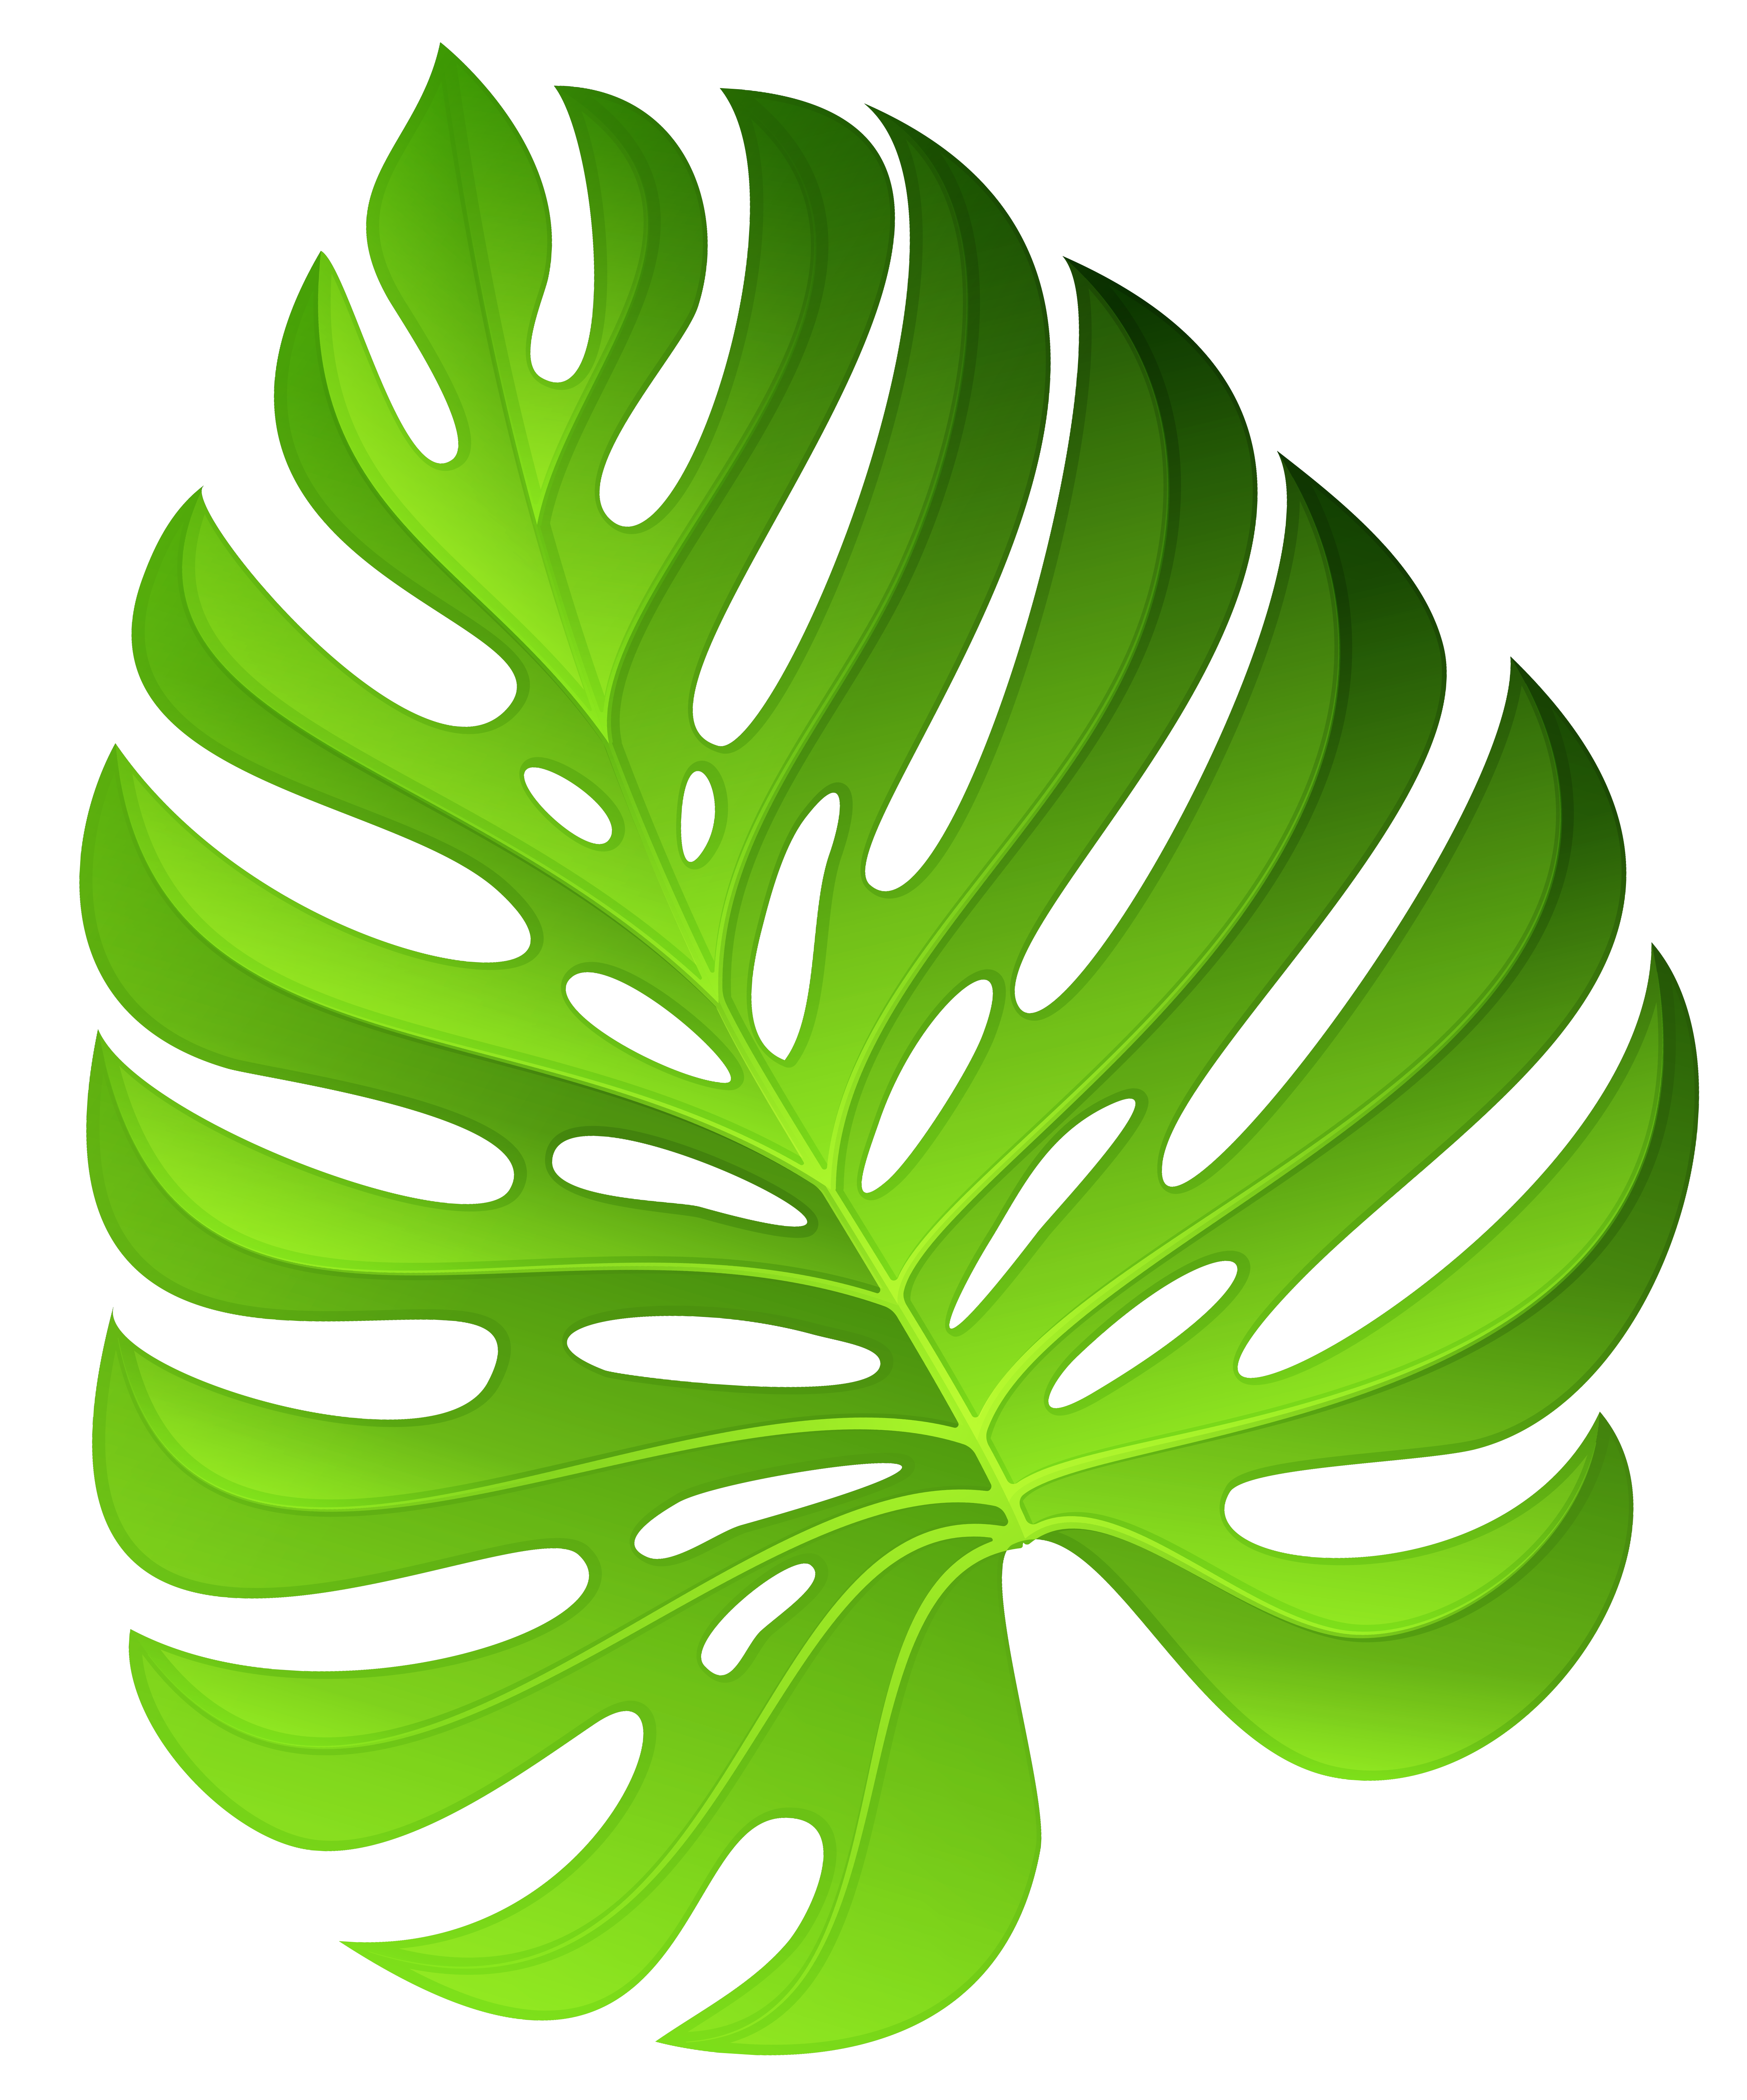 Plant at getdrawings com. Seedling clipart plantae